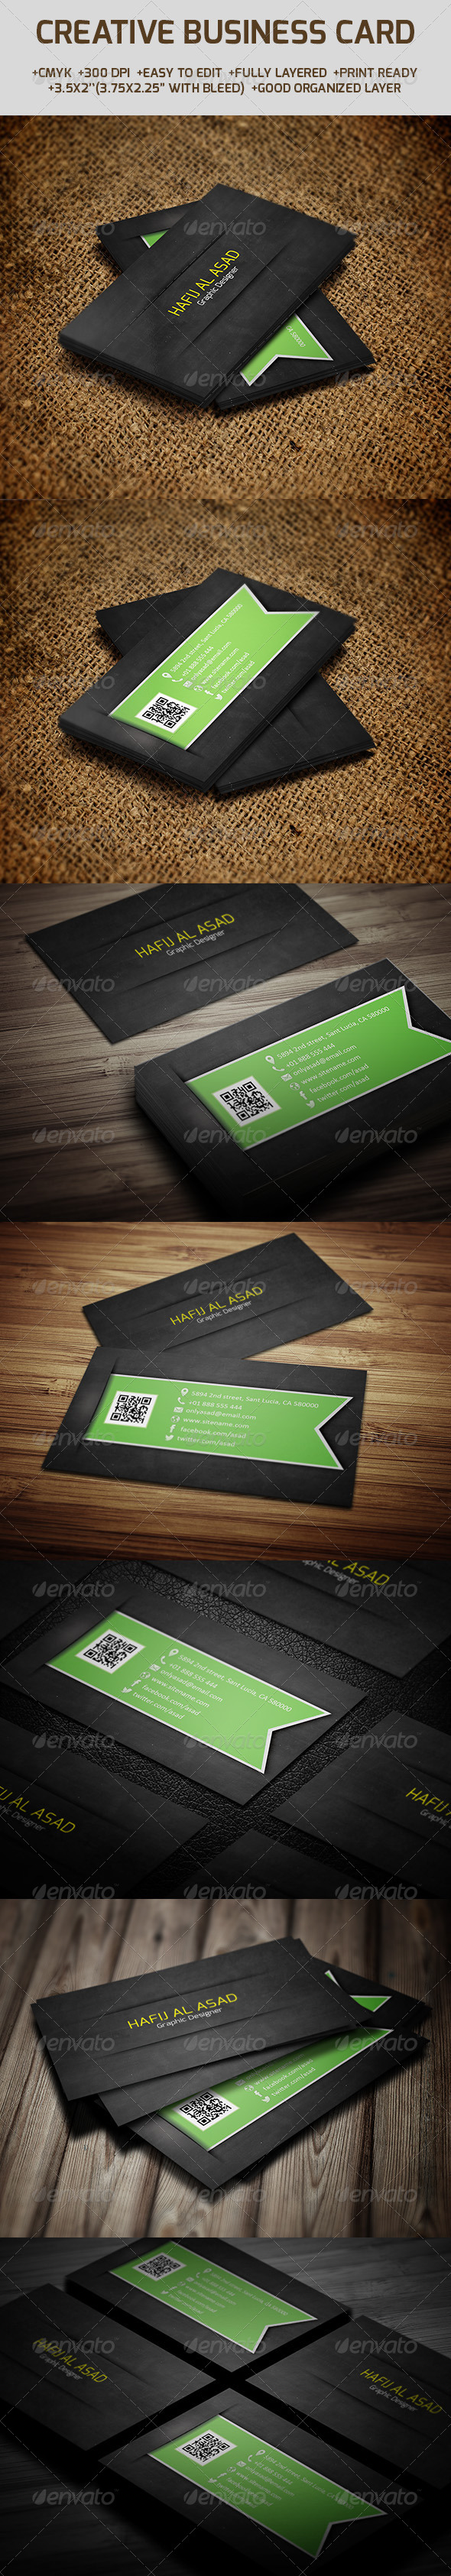 GraphicRiver Creative Business Card 6205940